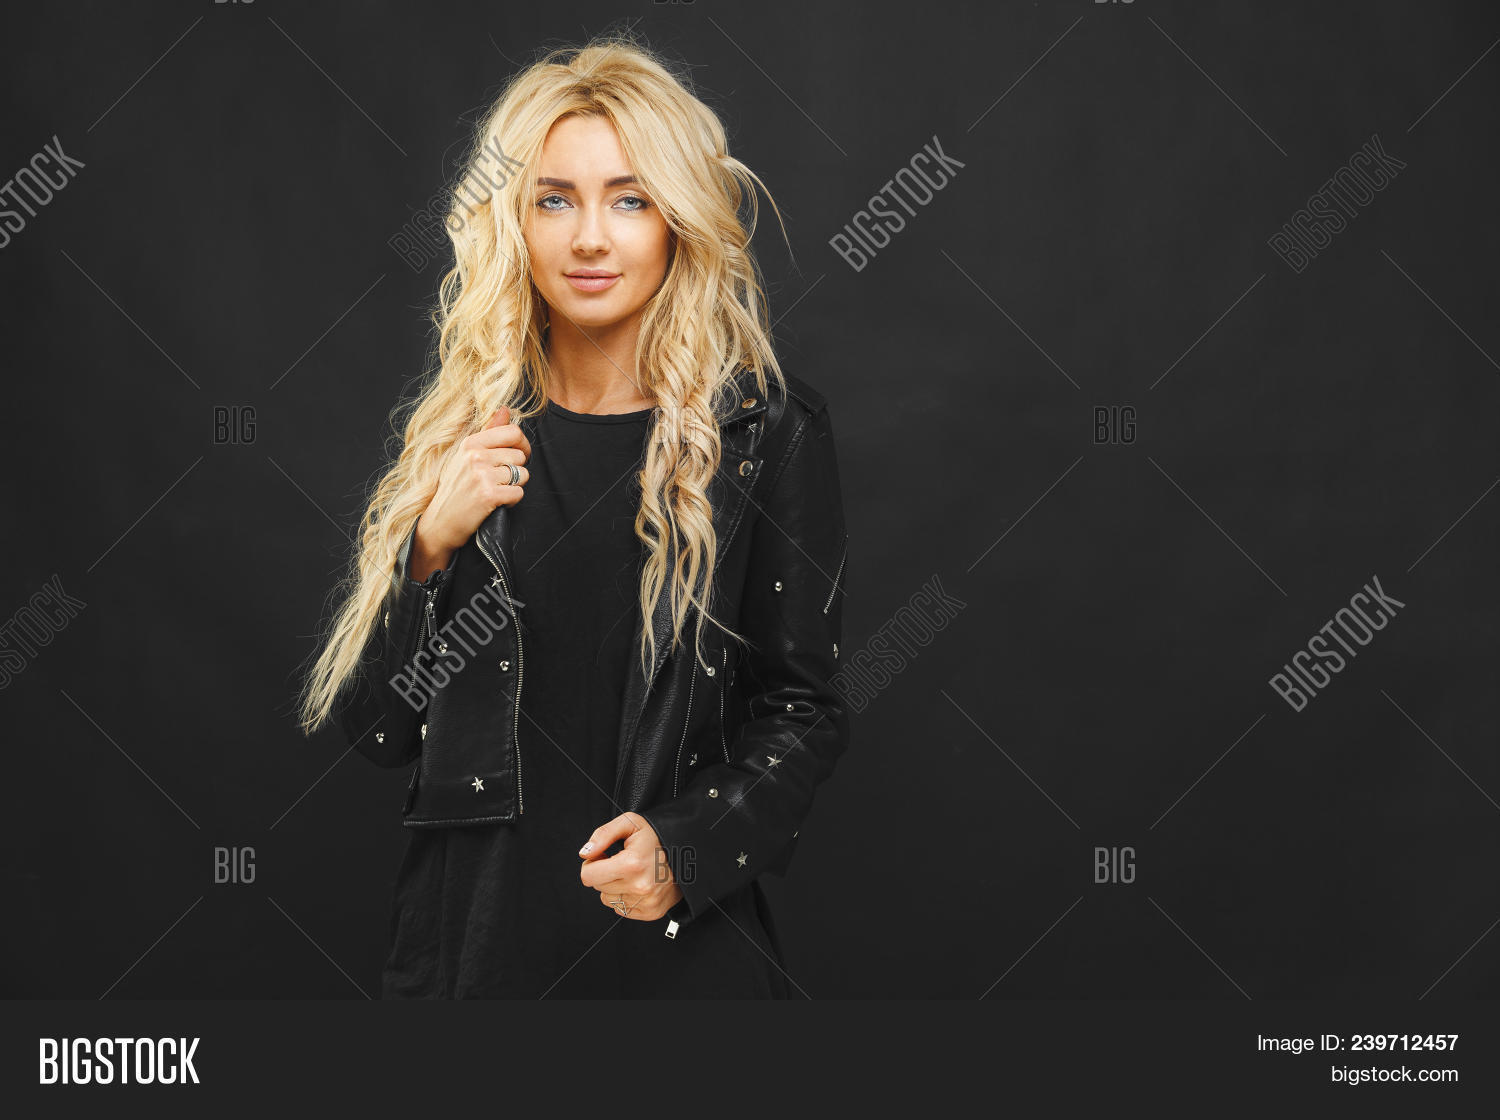 0bcd2f32d Portrait Stylish Girl Image   Photo (Free Trial)